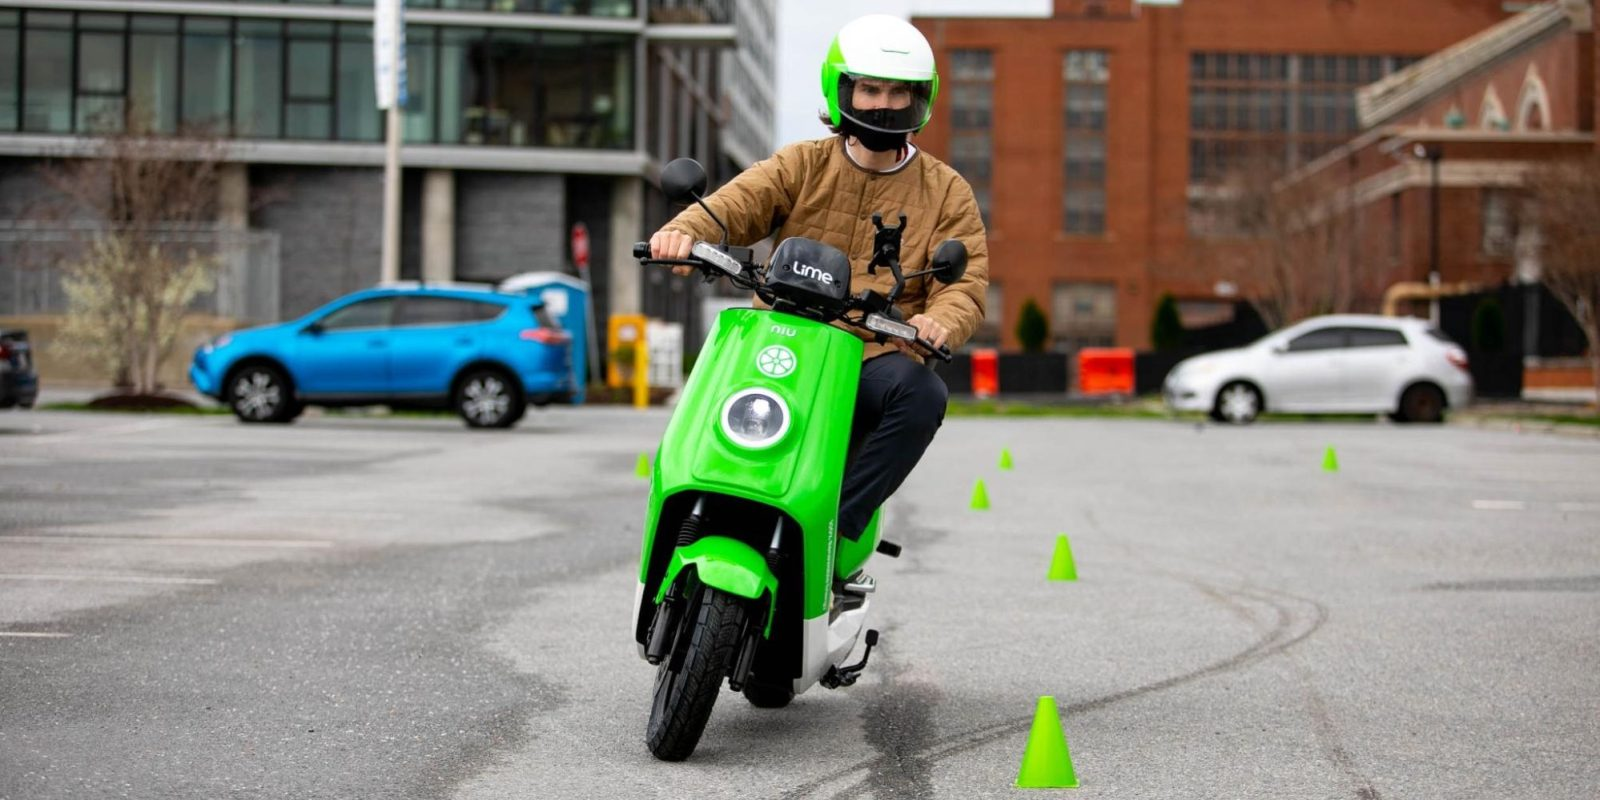 NYC gets another shared electric moped option, is the US ripe for an electric scooter wave?